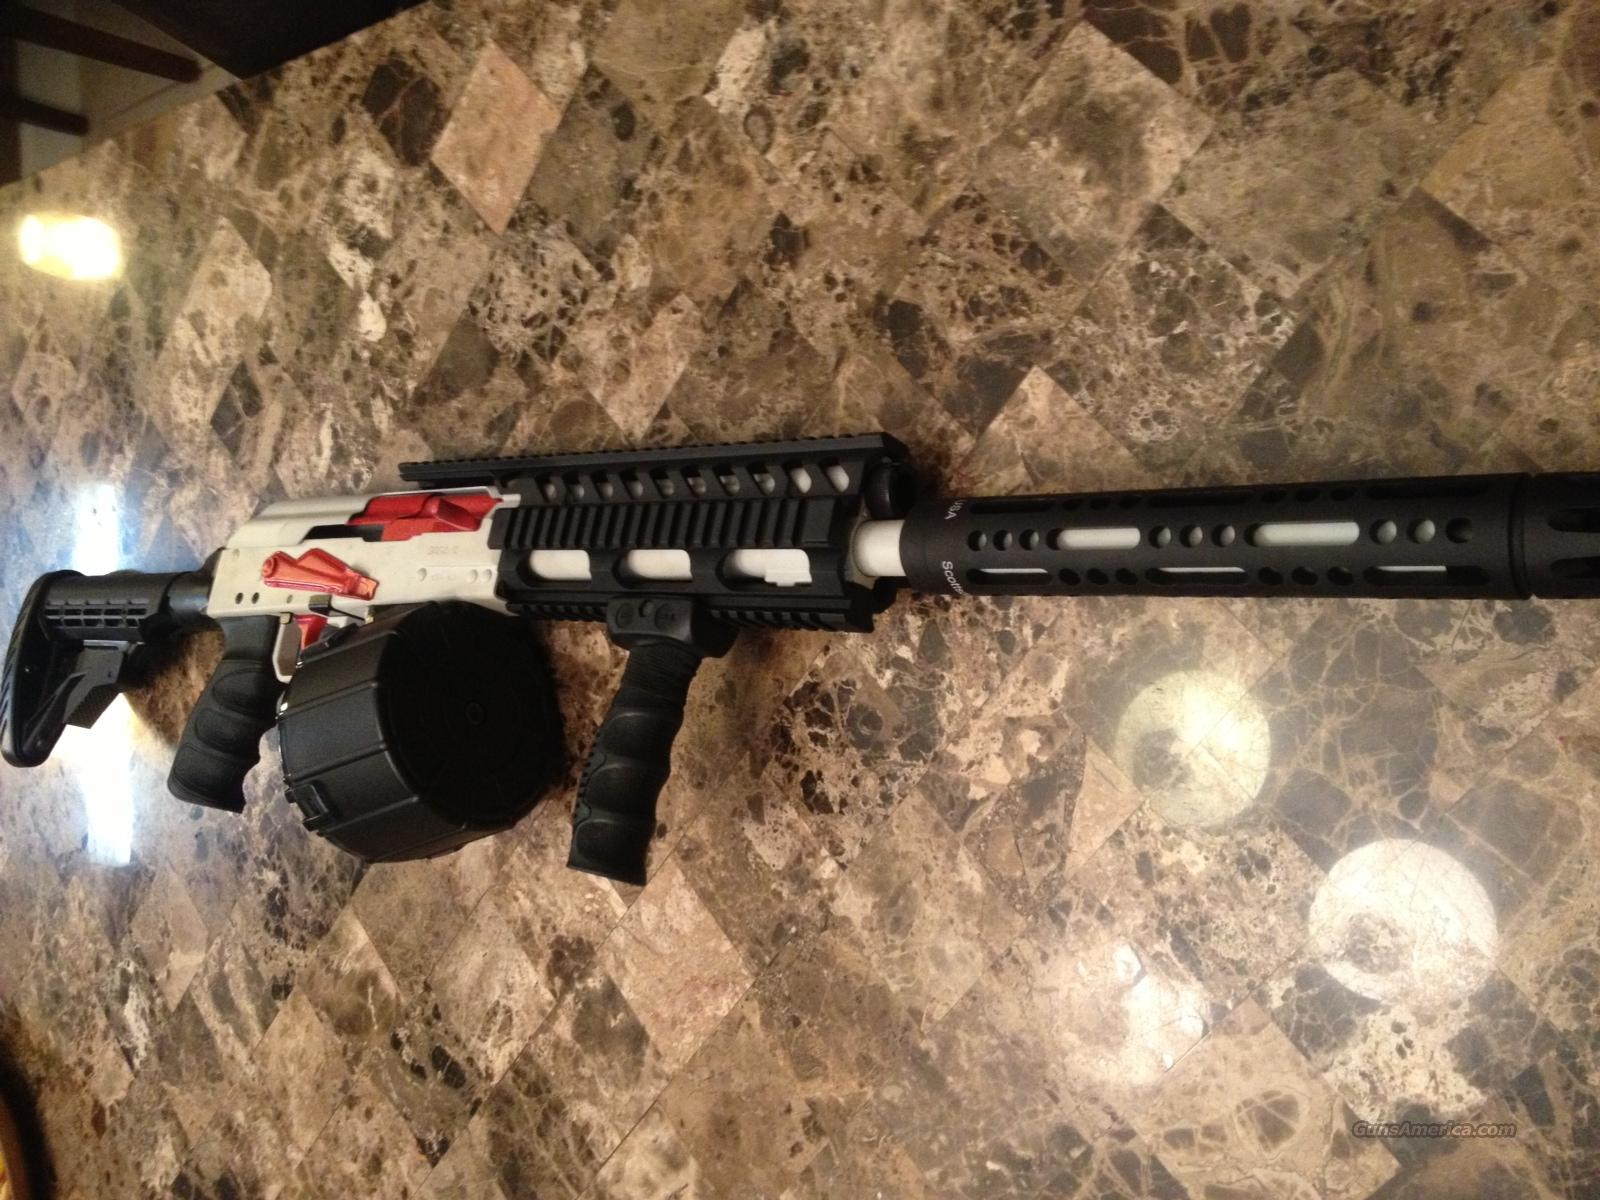 Total Custom Converted Saiga 12 gauge 12ga Ceramic Cerakoted Tactical drum Shotgun with tons of upgrades and extras! Make offer. Not AR-15 AK47 Scar PS90 FN 5 7   Guns > Shotguns > Saiga Shotguns > Shotguns